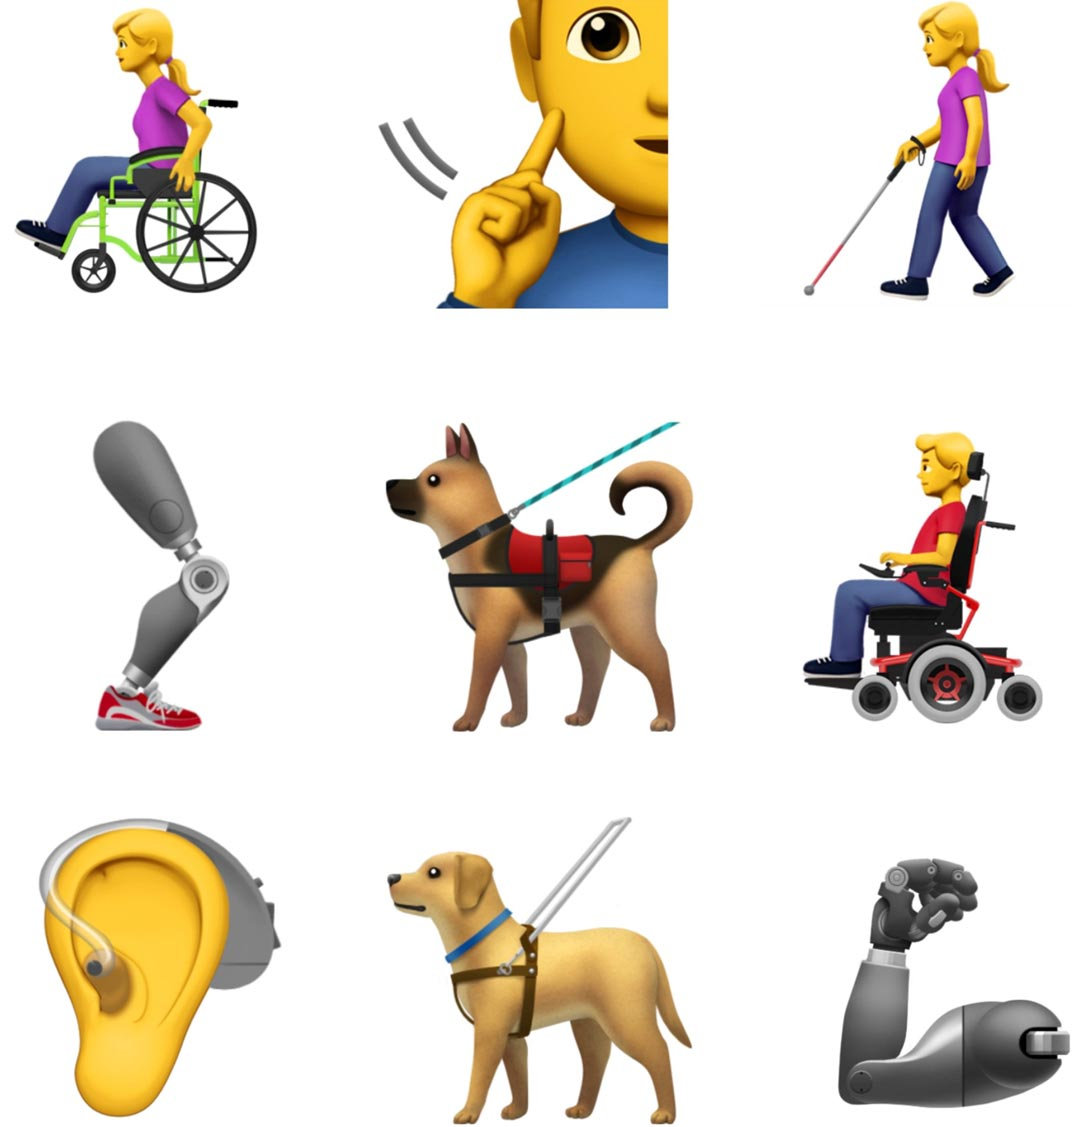 emojis with disabilities